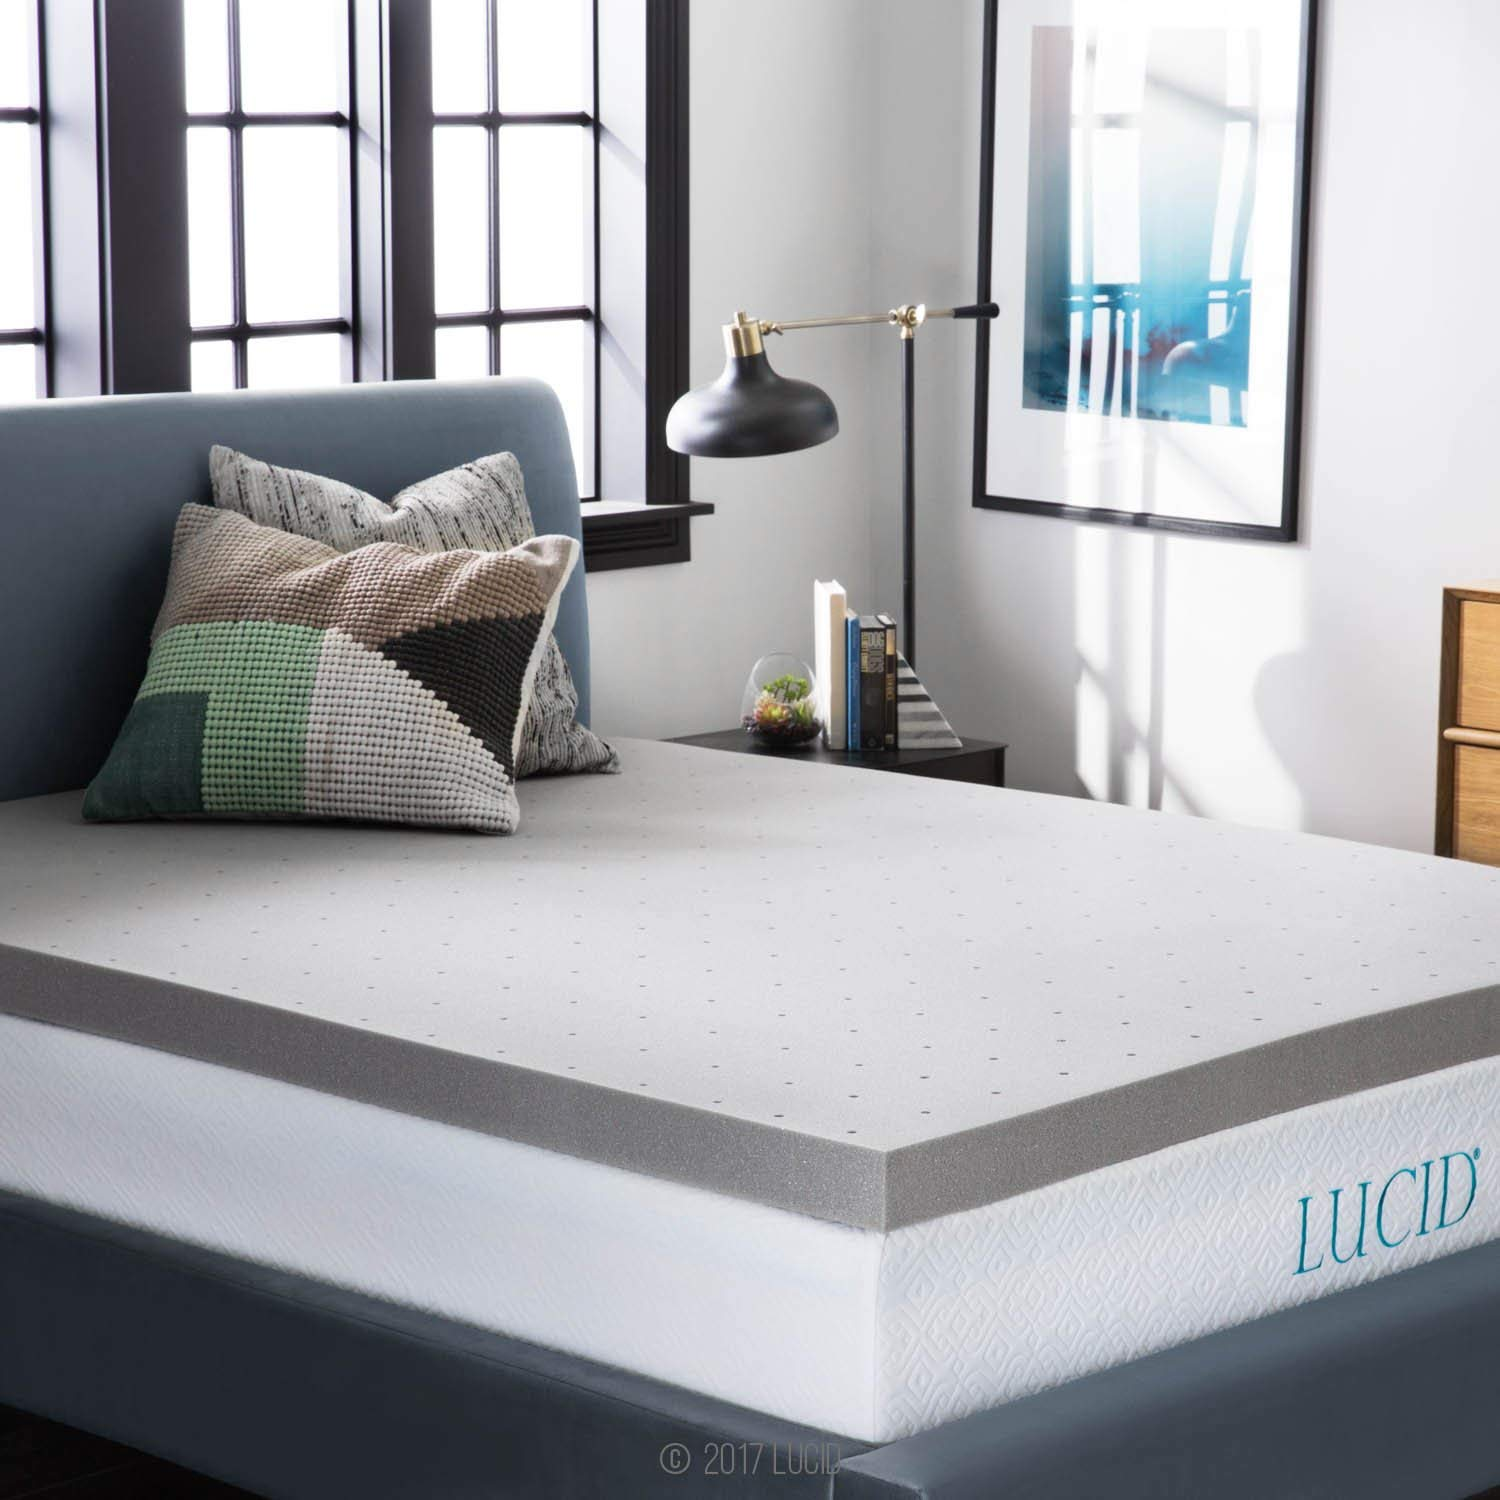 LUCID best cooling mattress pad review and buying guide by www.dailysleep.org